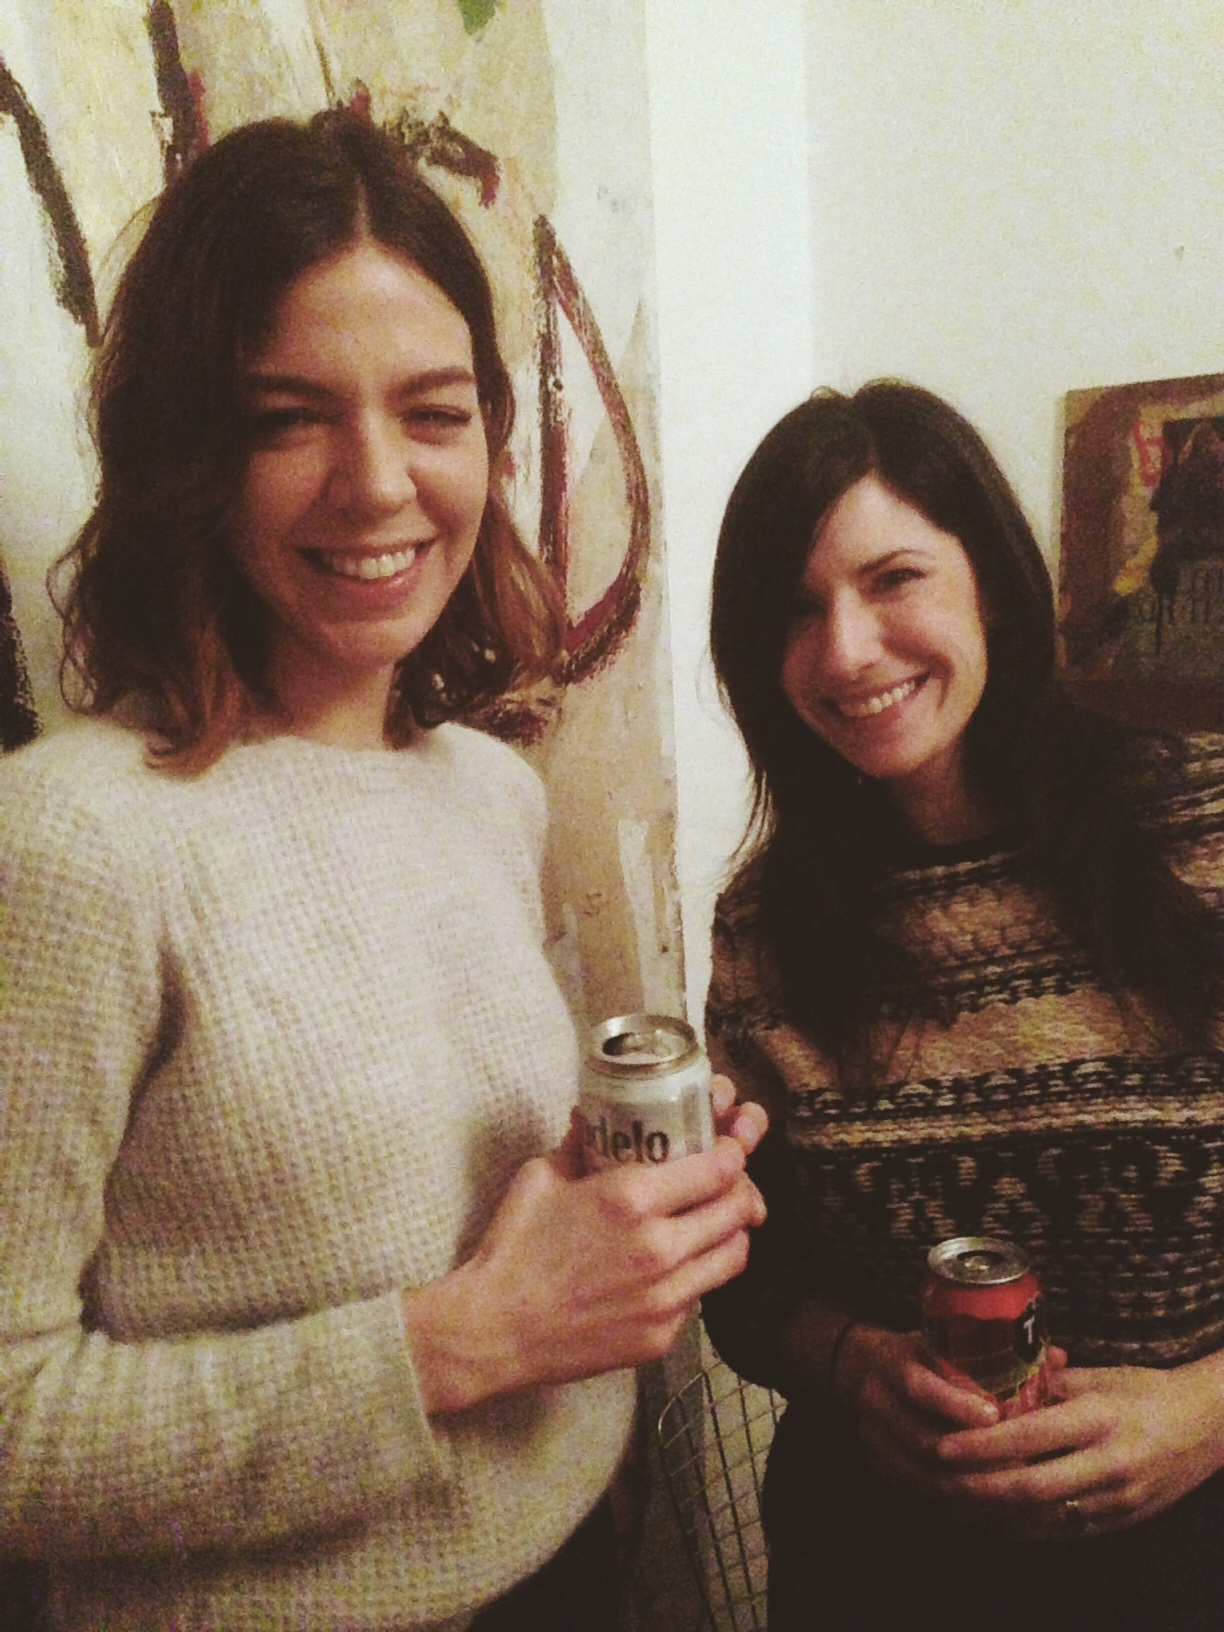 Hot girls, check, winter jumpers, check, Mexican beer, check.